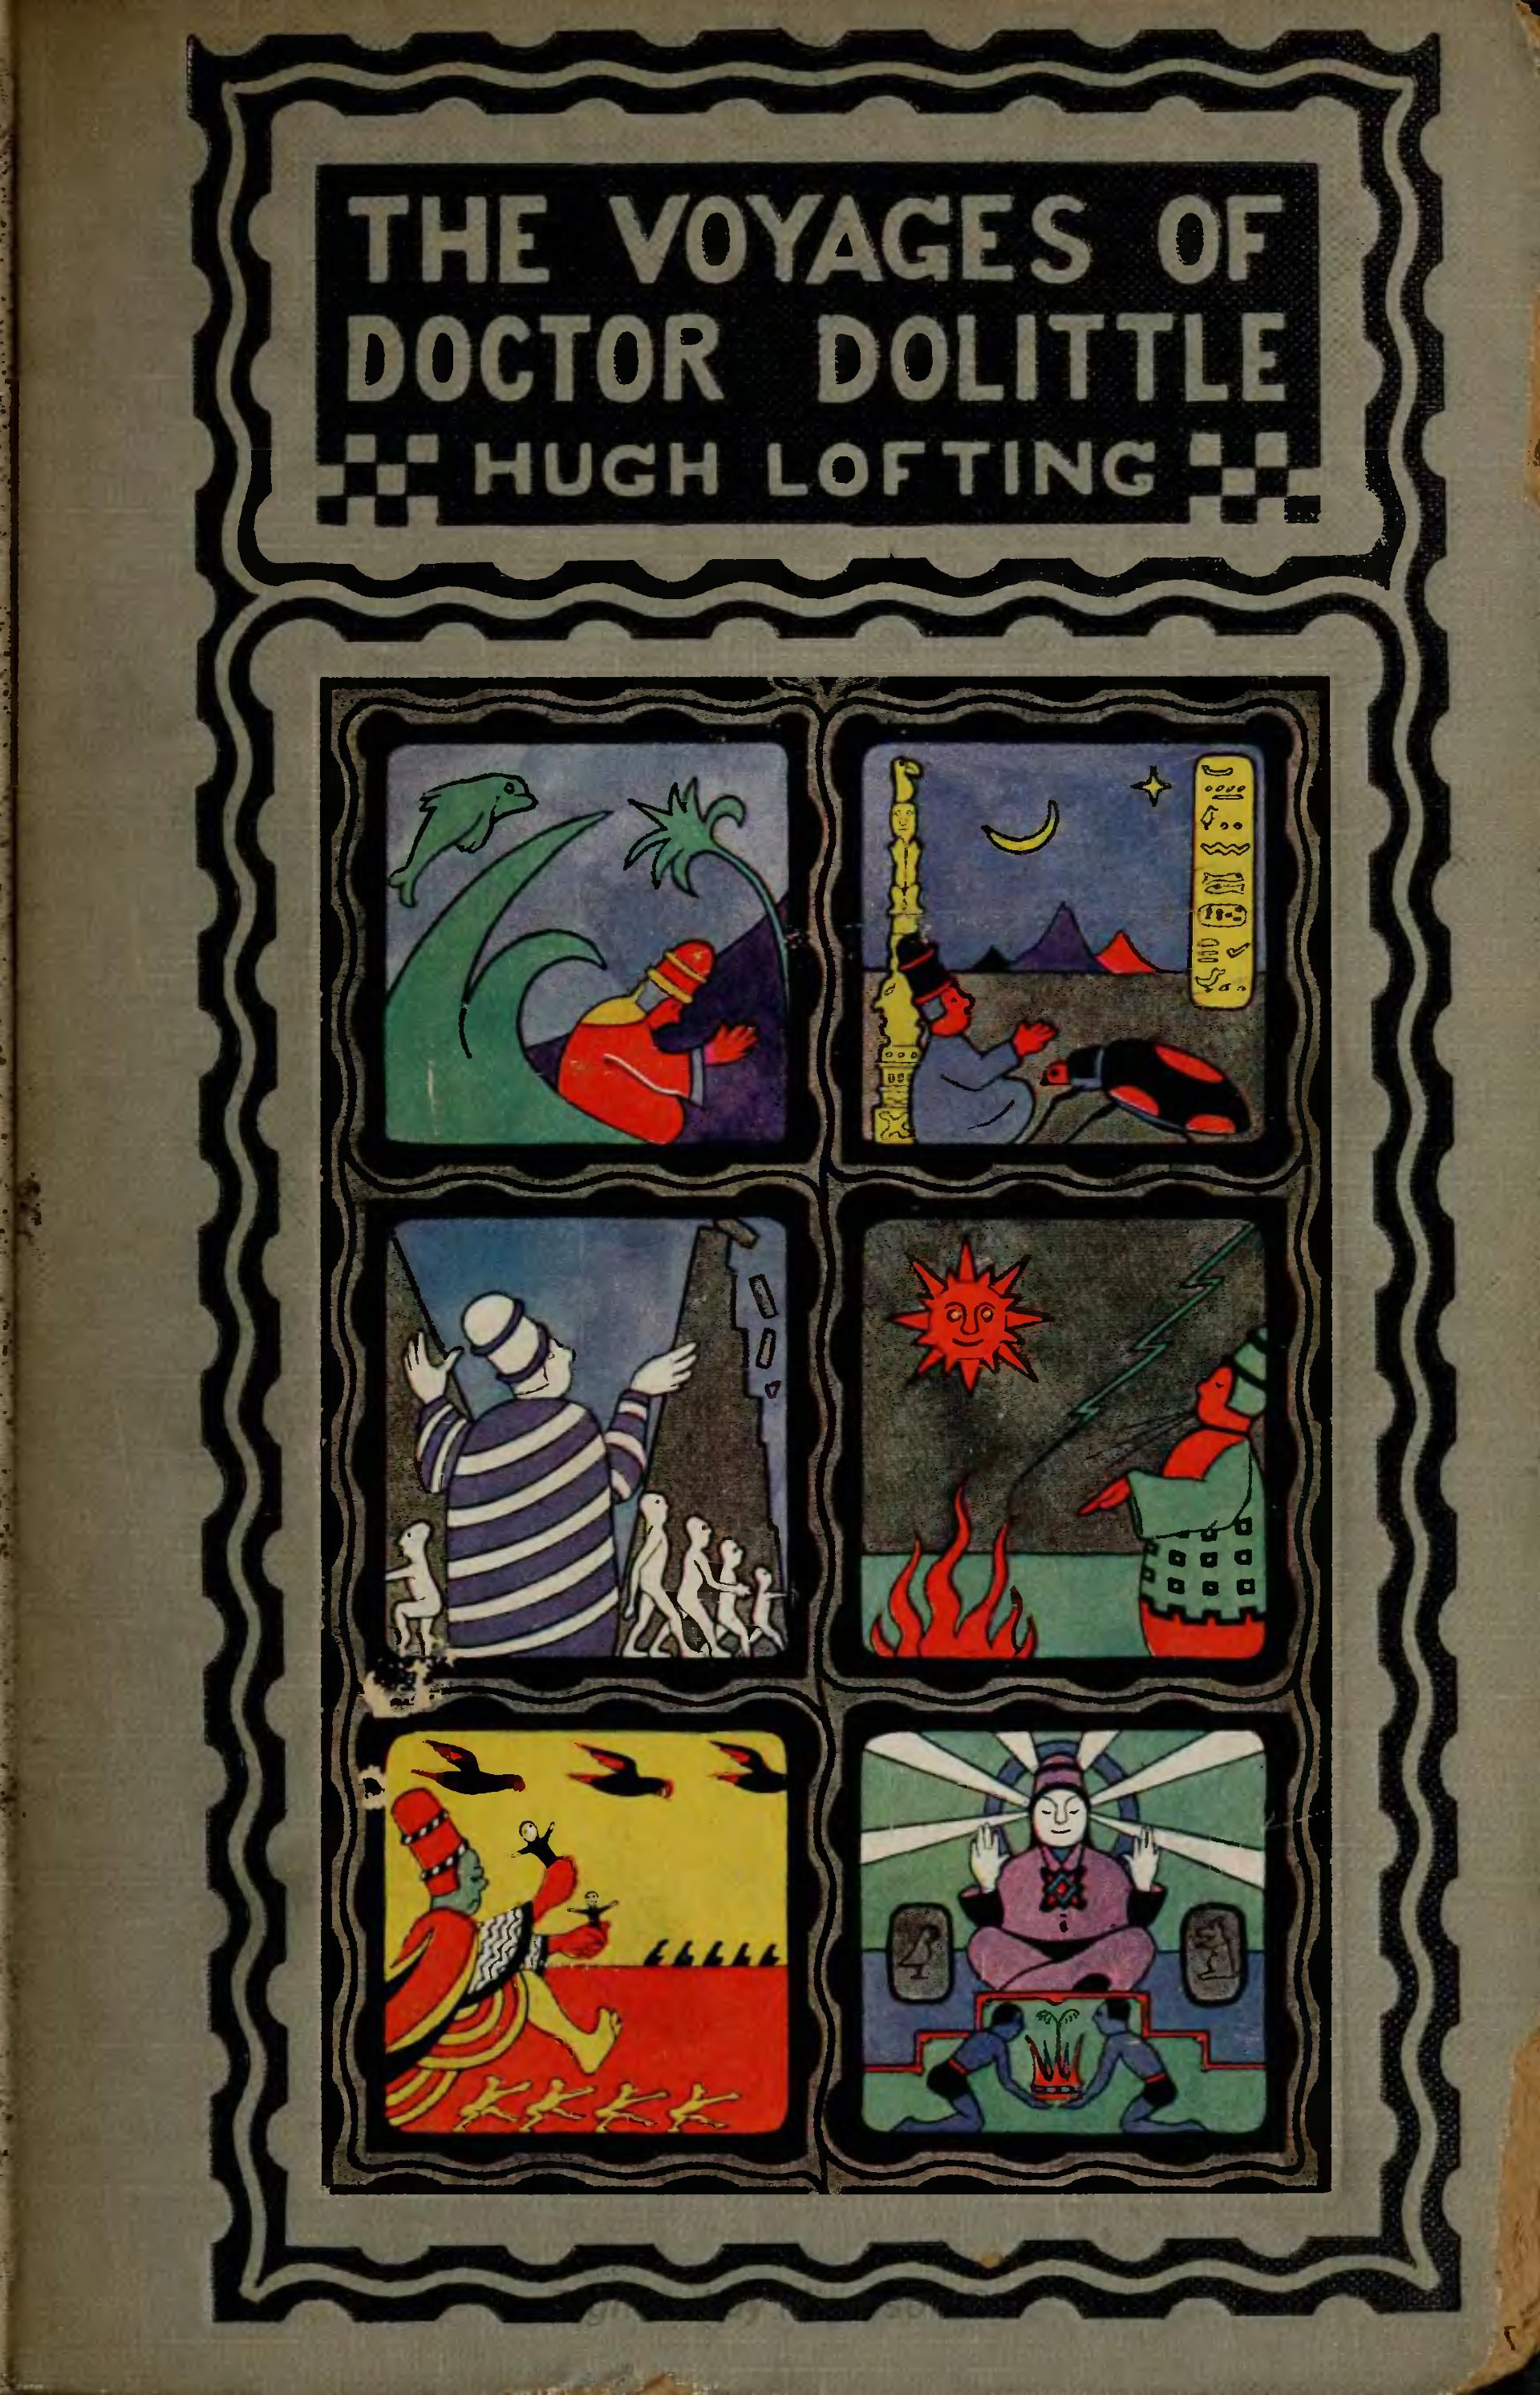 Hugh Lofting